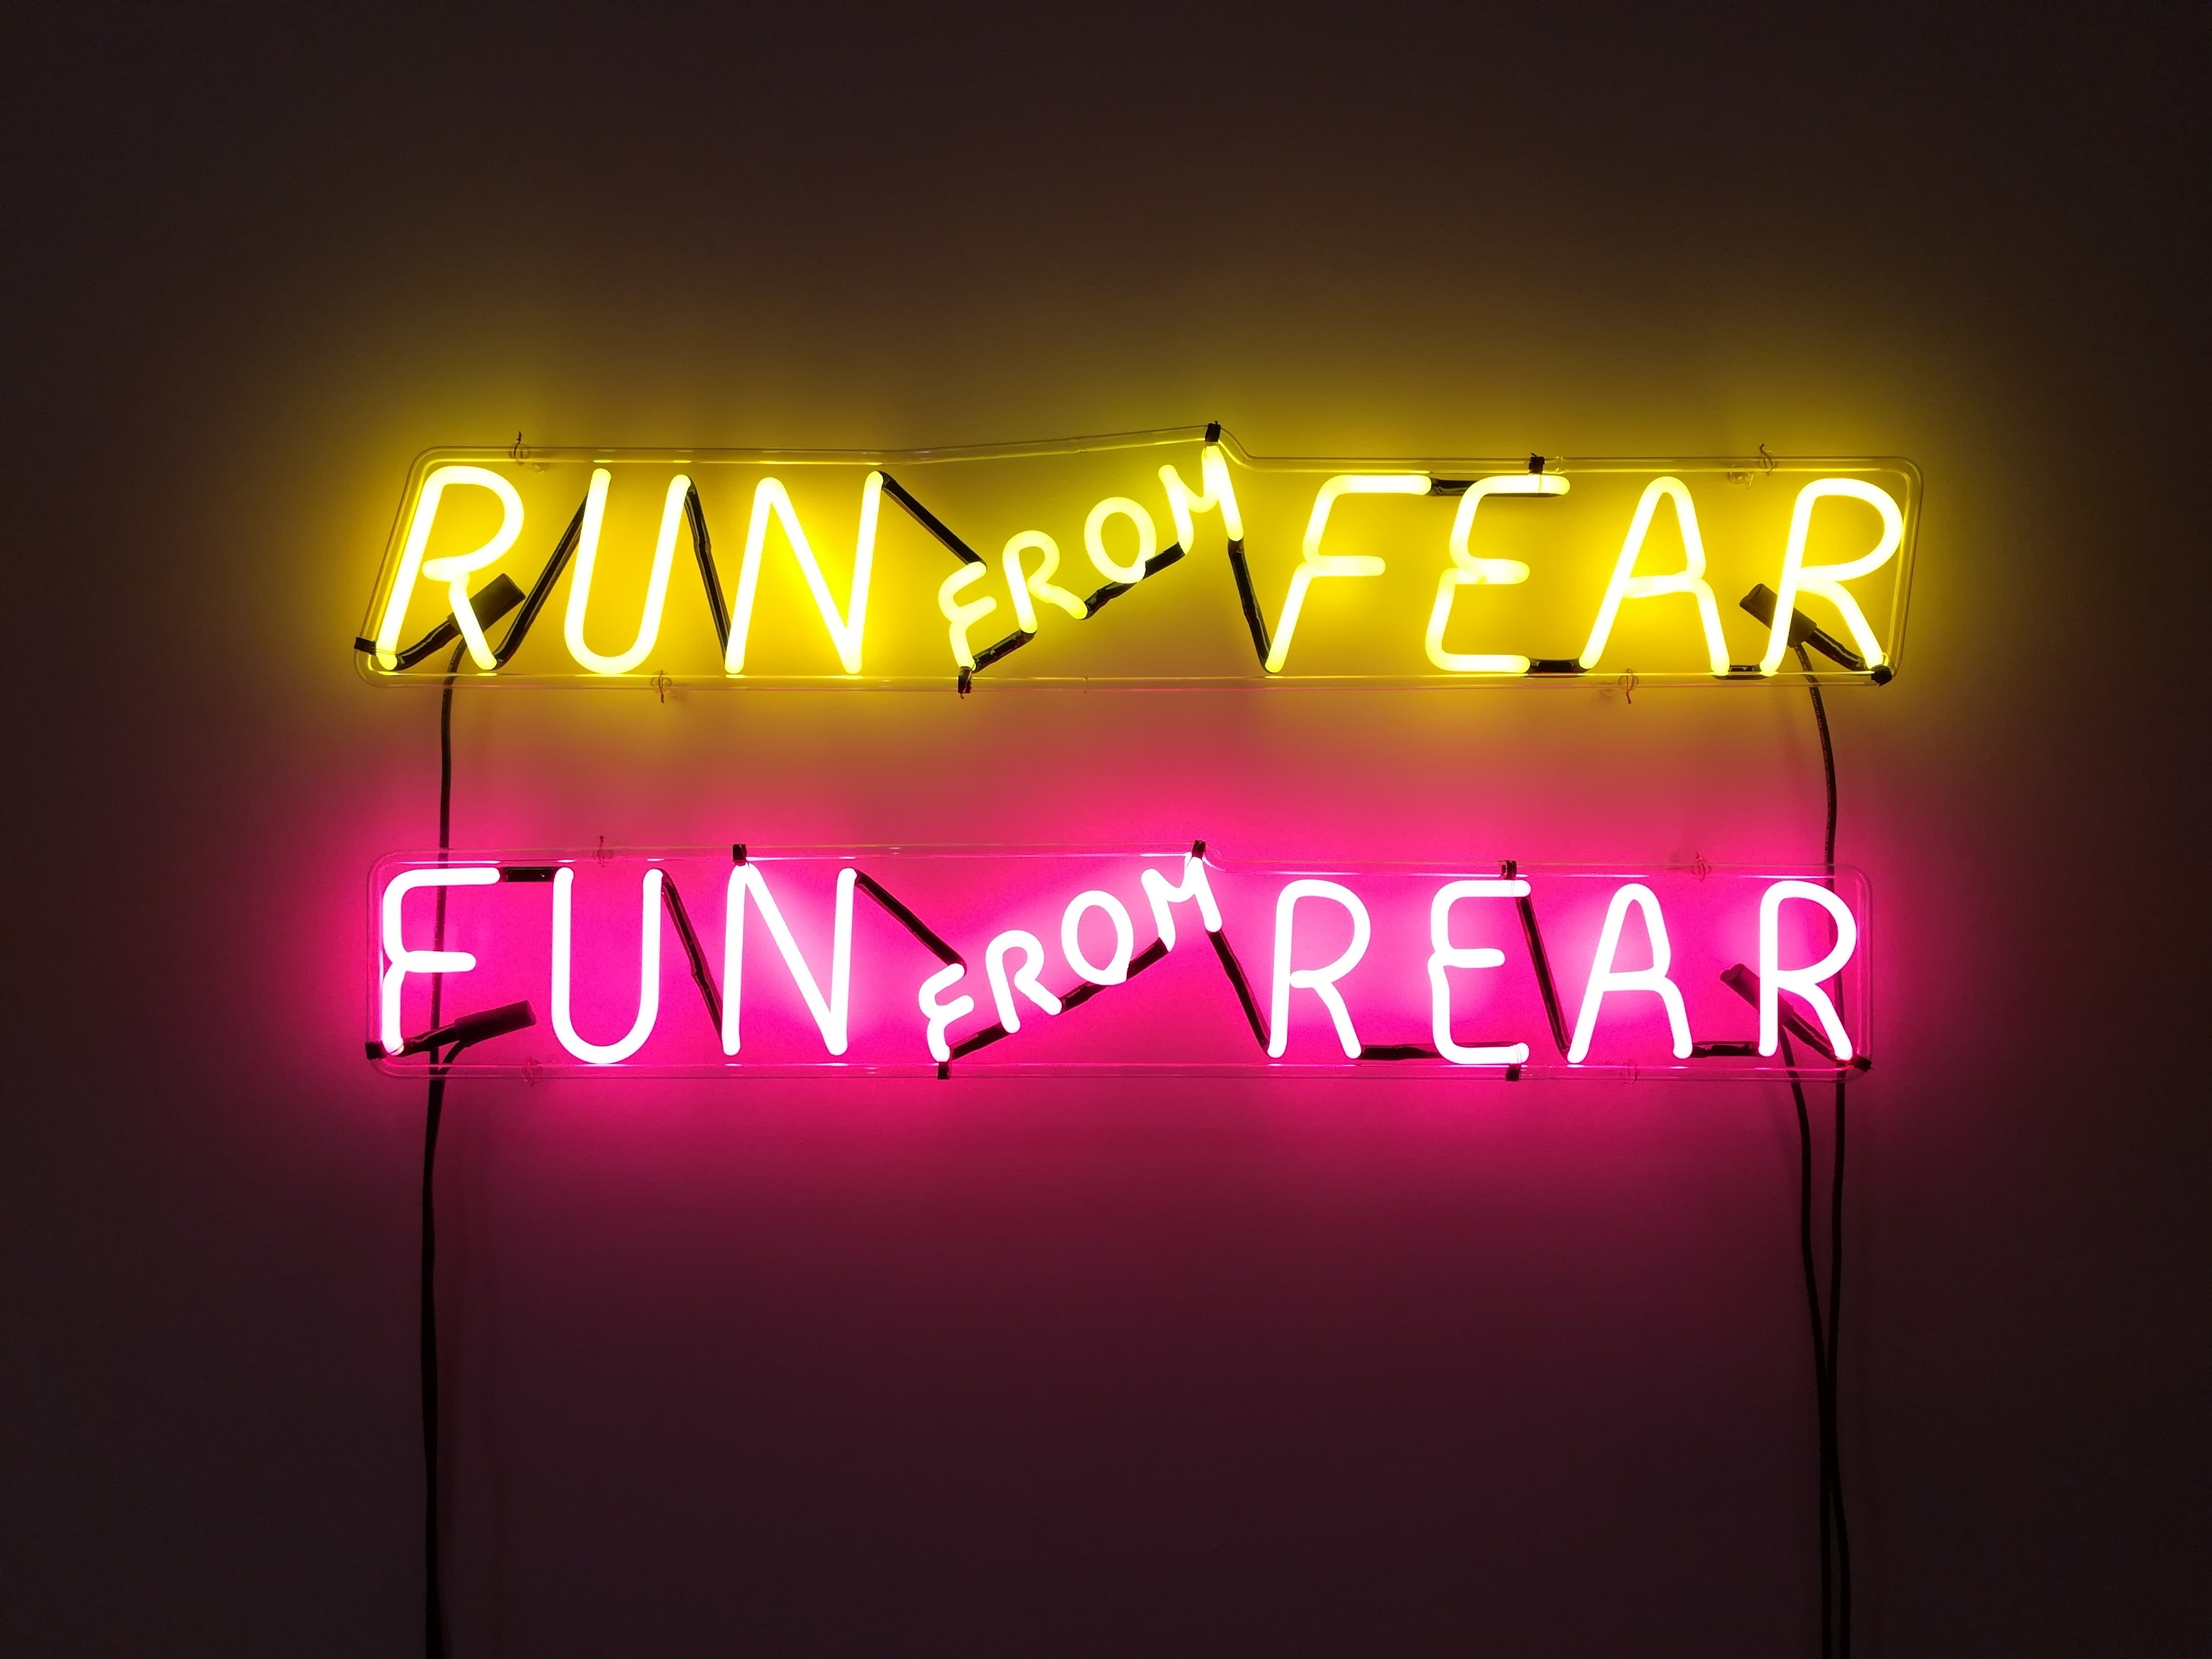 run frfom fear fun from rear LED signage